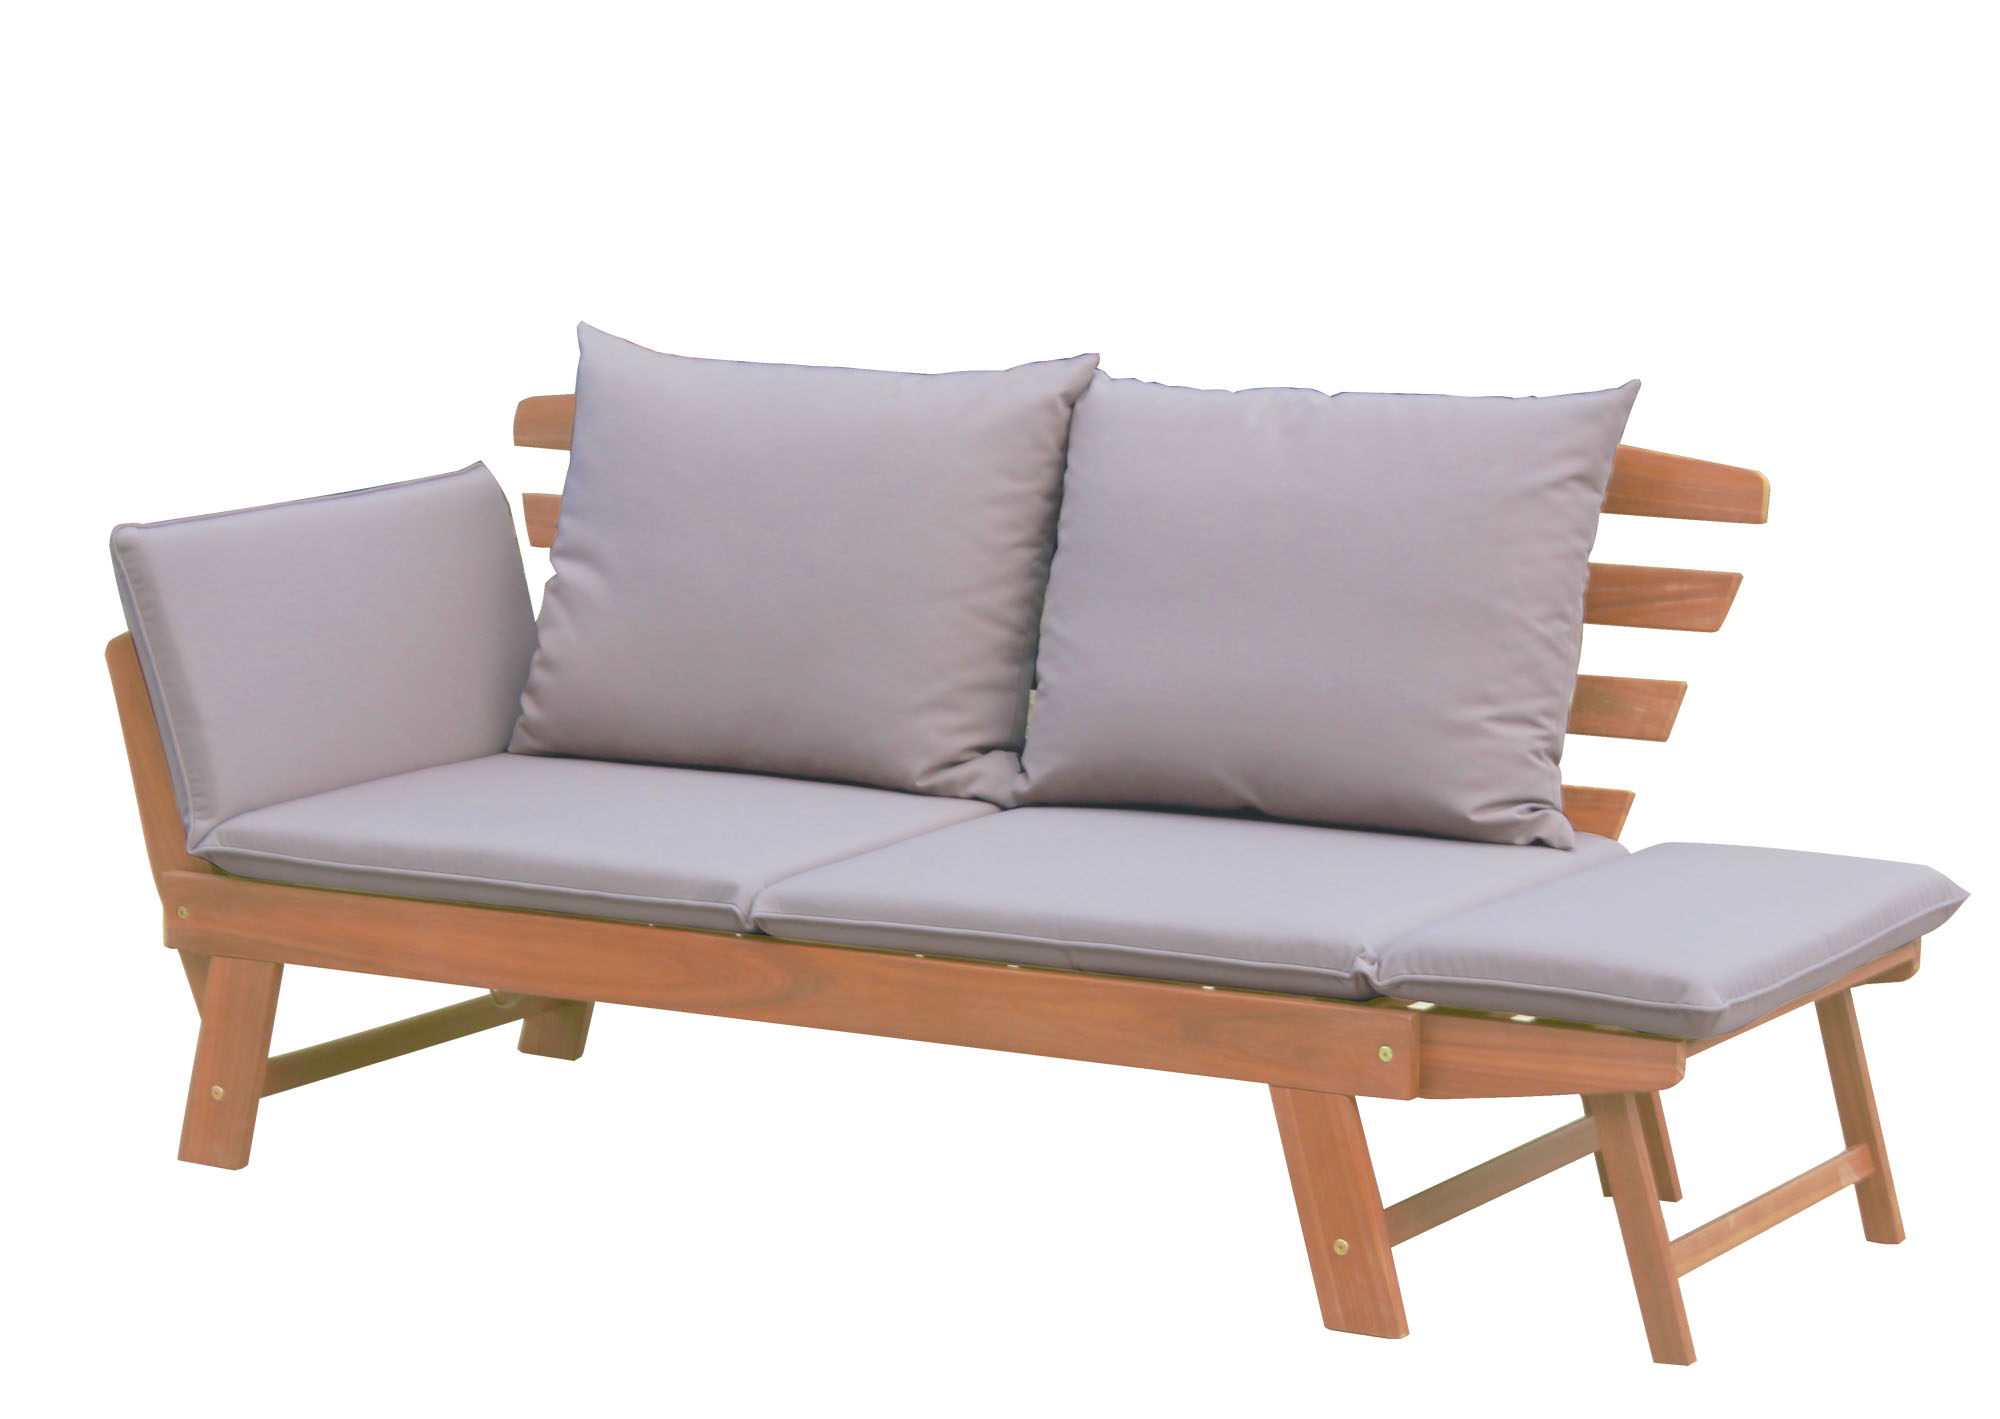 Daybed Sleeper Sofa (Series 3)